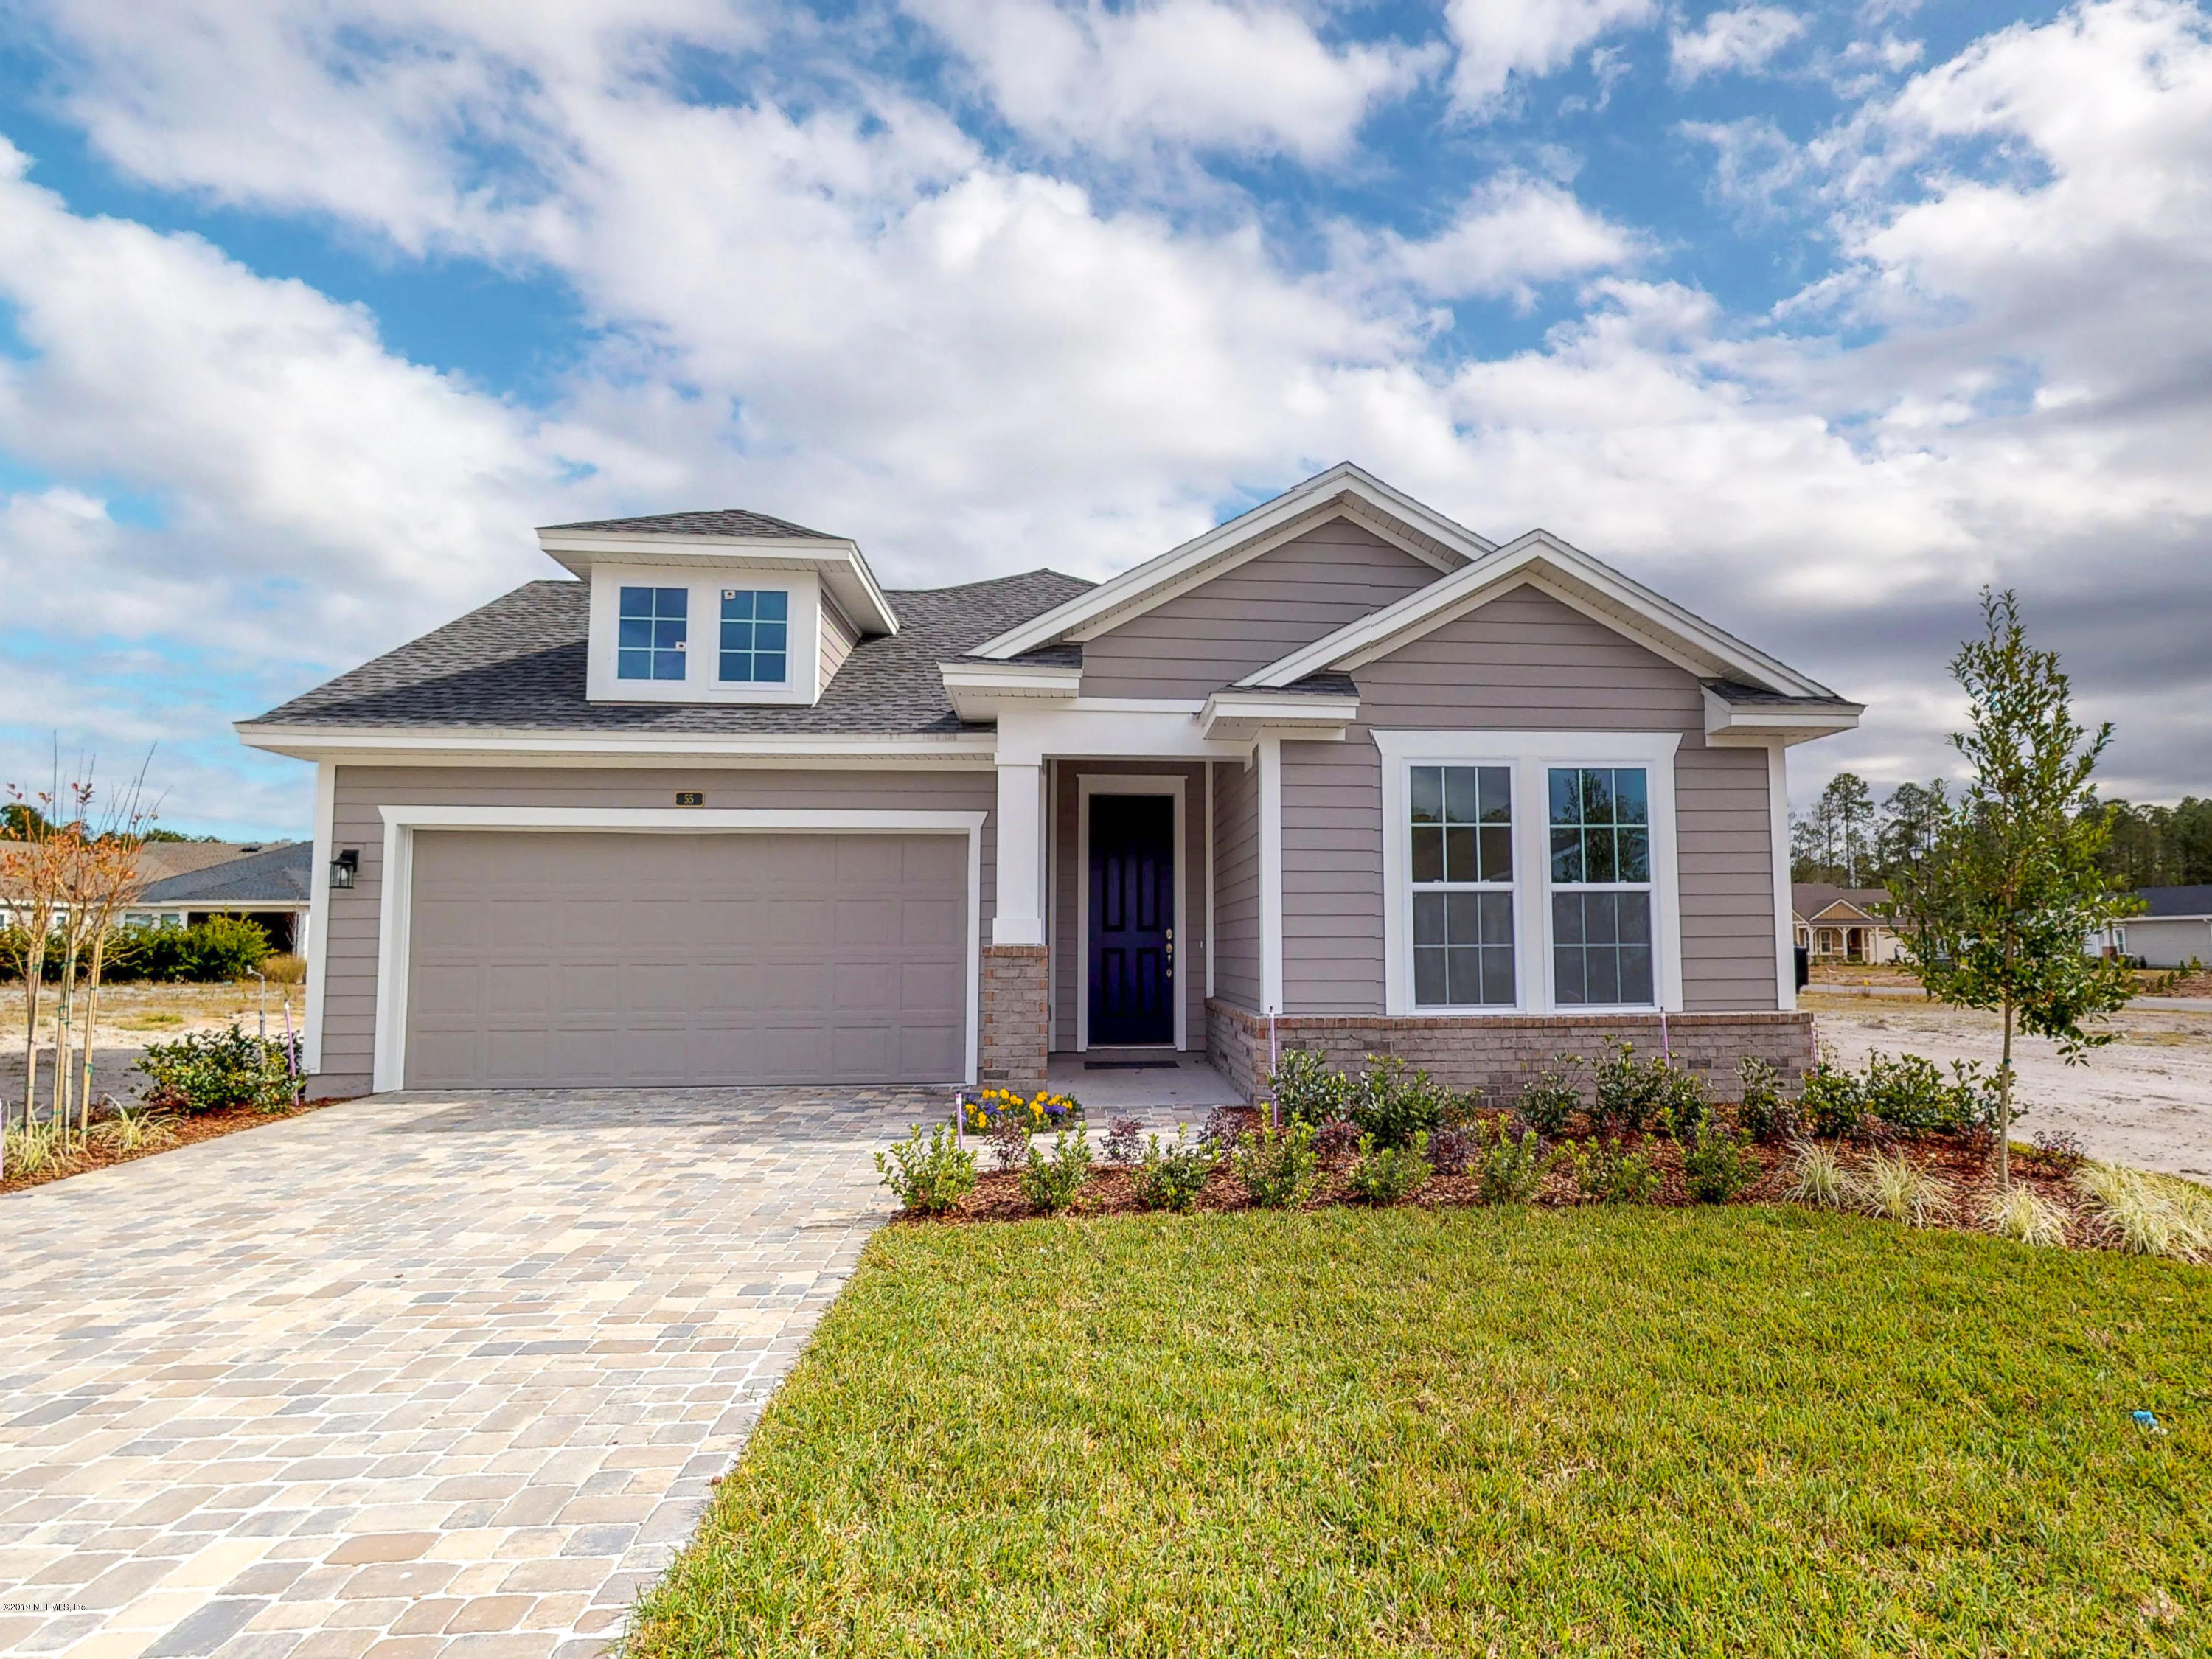 55 FORESTVIEW, PONTE VEDRA, FLORIDA 32081, 3 Bedrooms Bedrooms, ,2 BathroomsBathrooms,Residential - single family,For sale,FORESTVIEW,951339